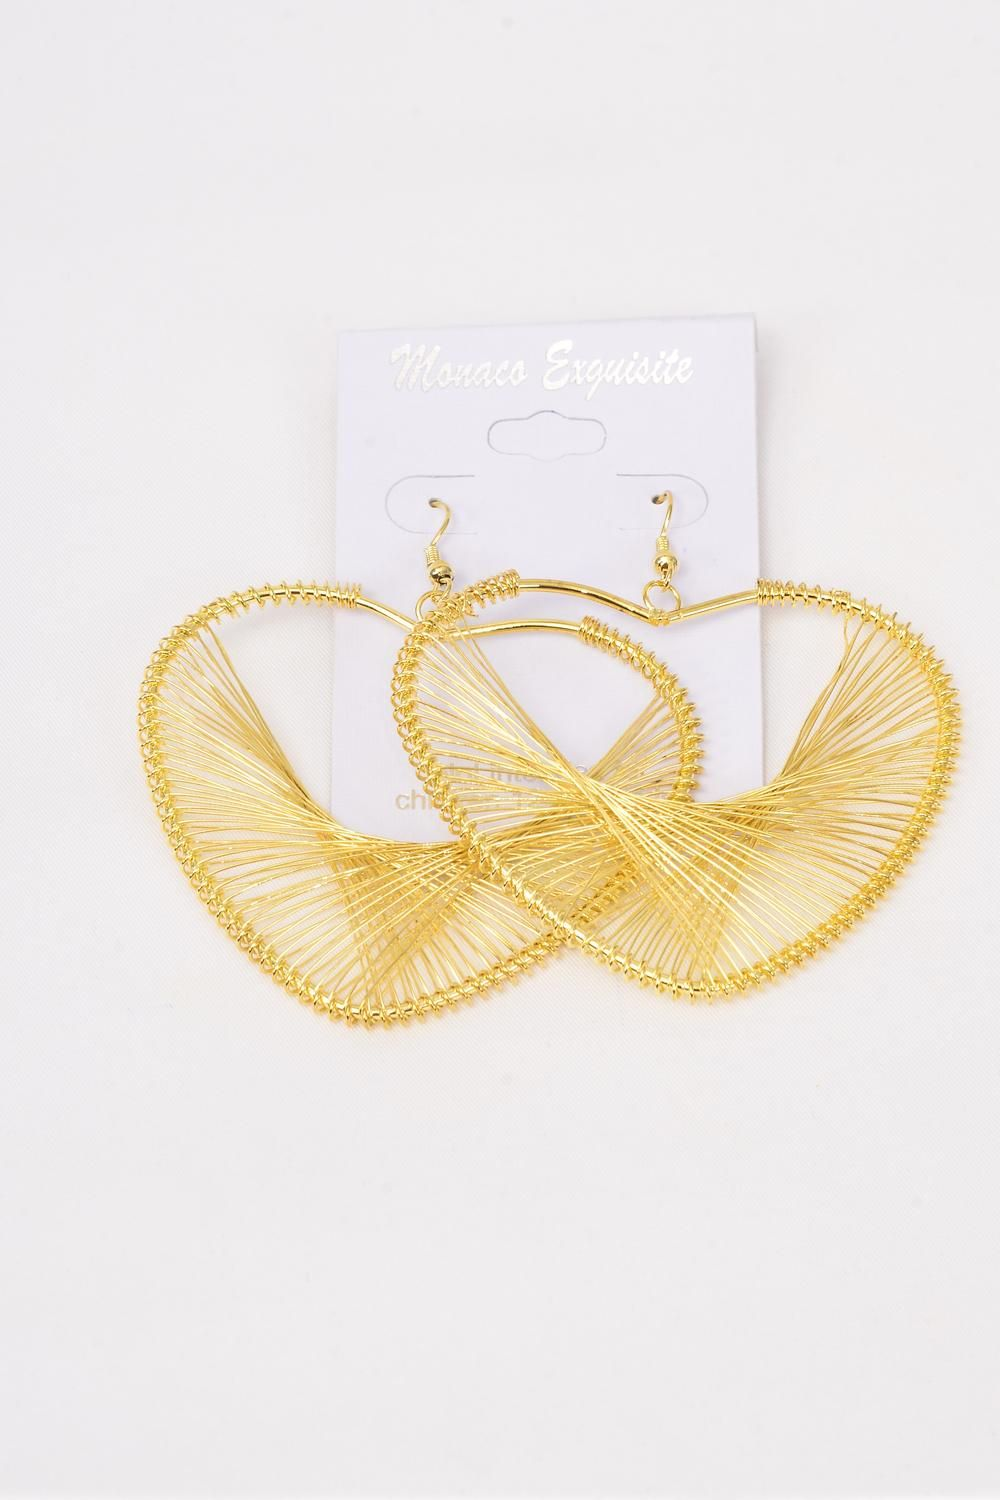 "Earrings Heart Gold/DZ **Fish Hook** Size-2""x 2.25"" wide,Earring Card & OPP bag & UPC code,Choose Gold Or Silver Finish -"